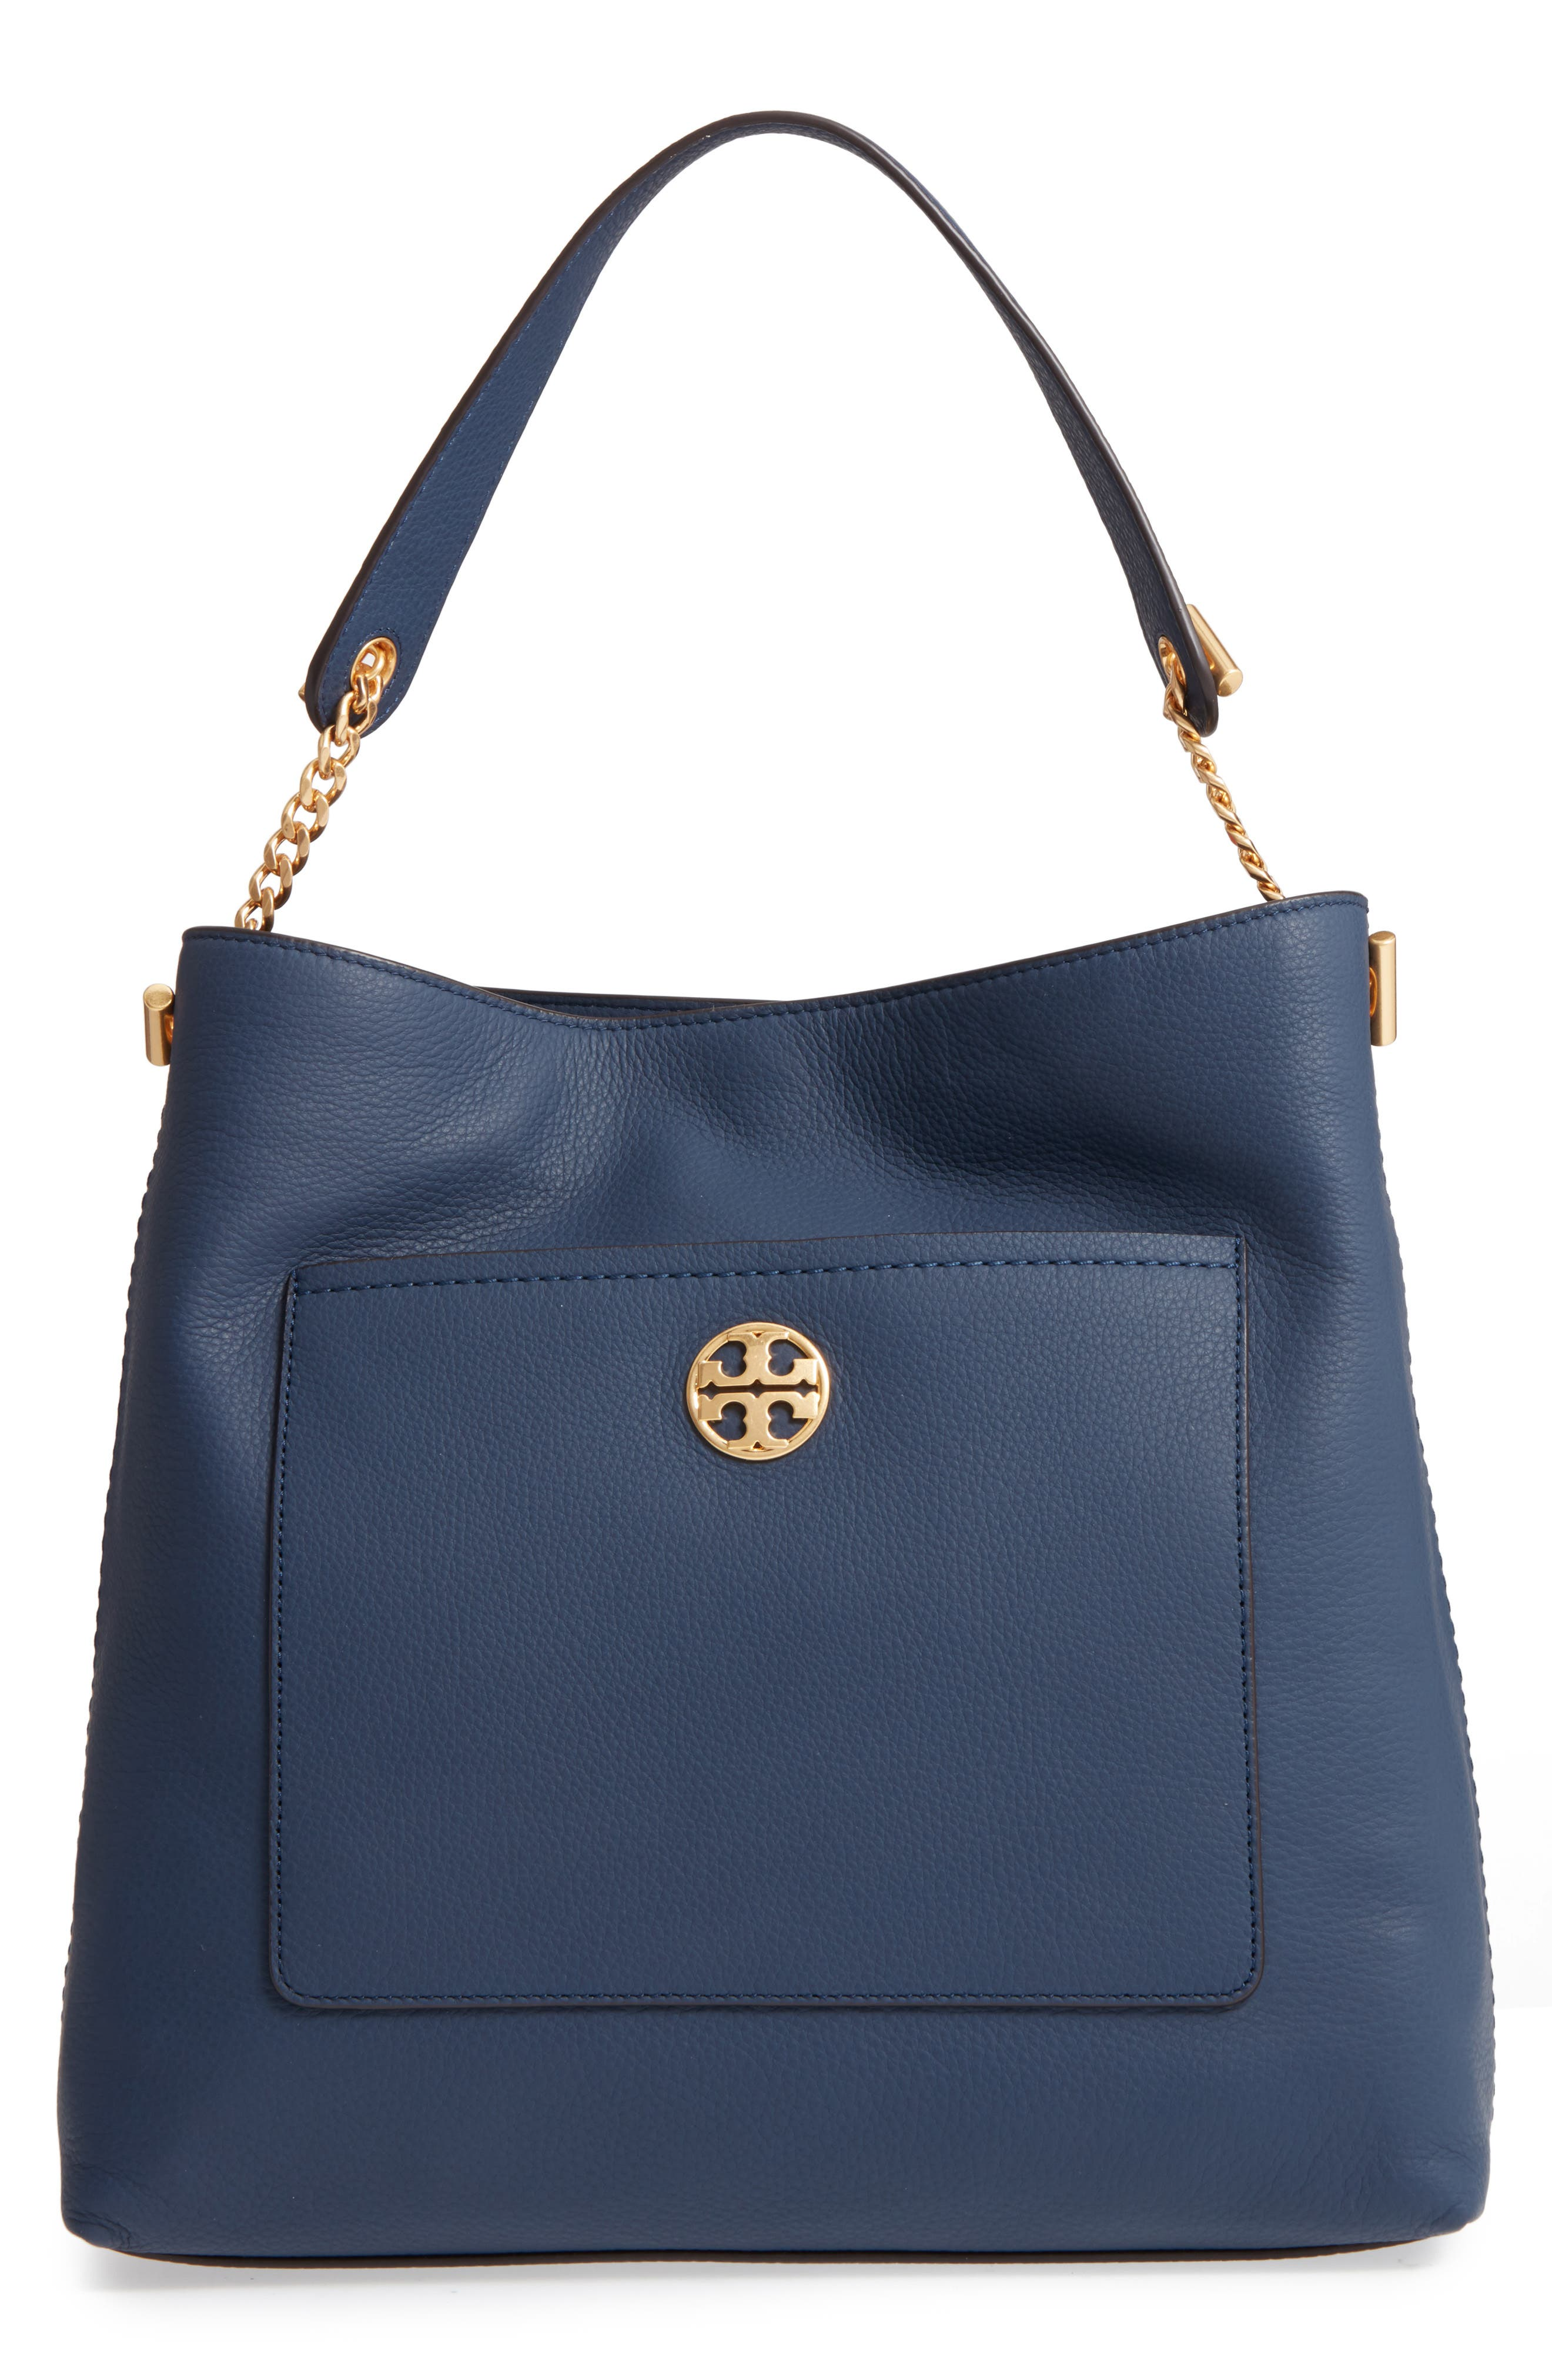 Tory Burch Chelsea Chain Leather Hobo